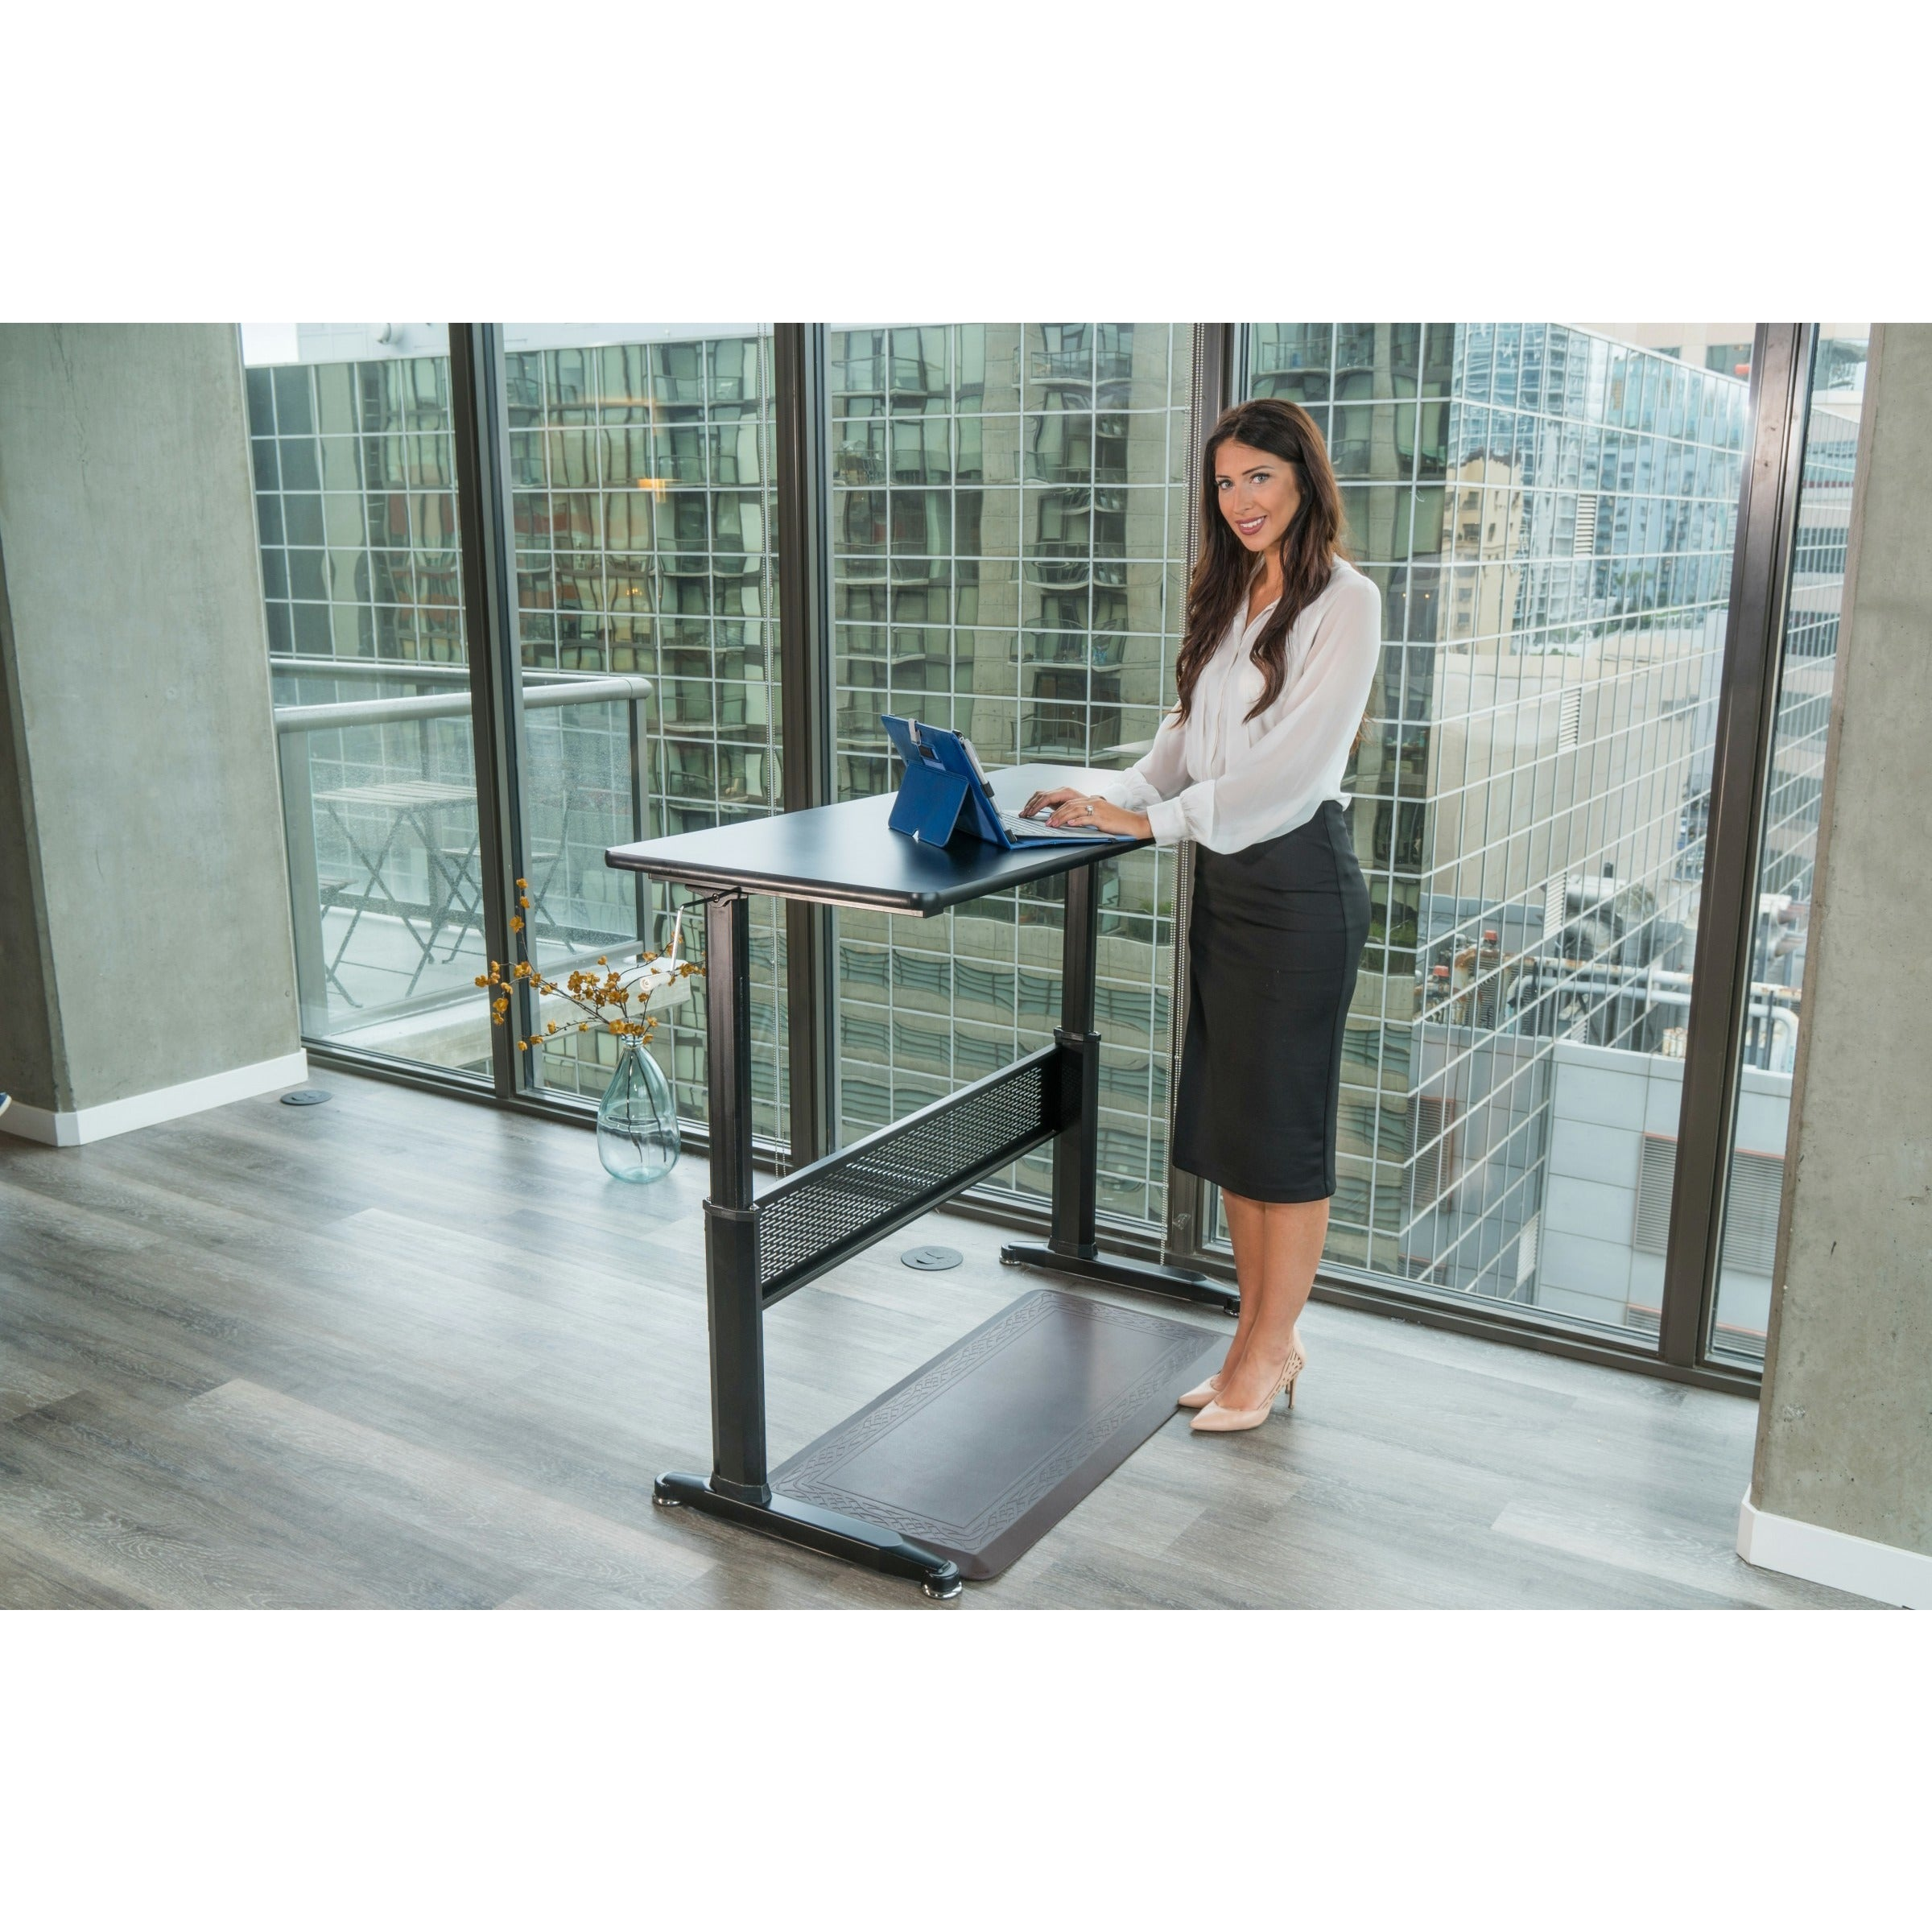 standing orig a tl en details stand workfit ergotron desk workstation crank up us product converter products